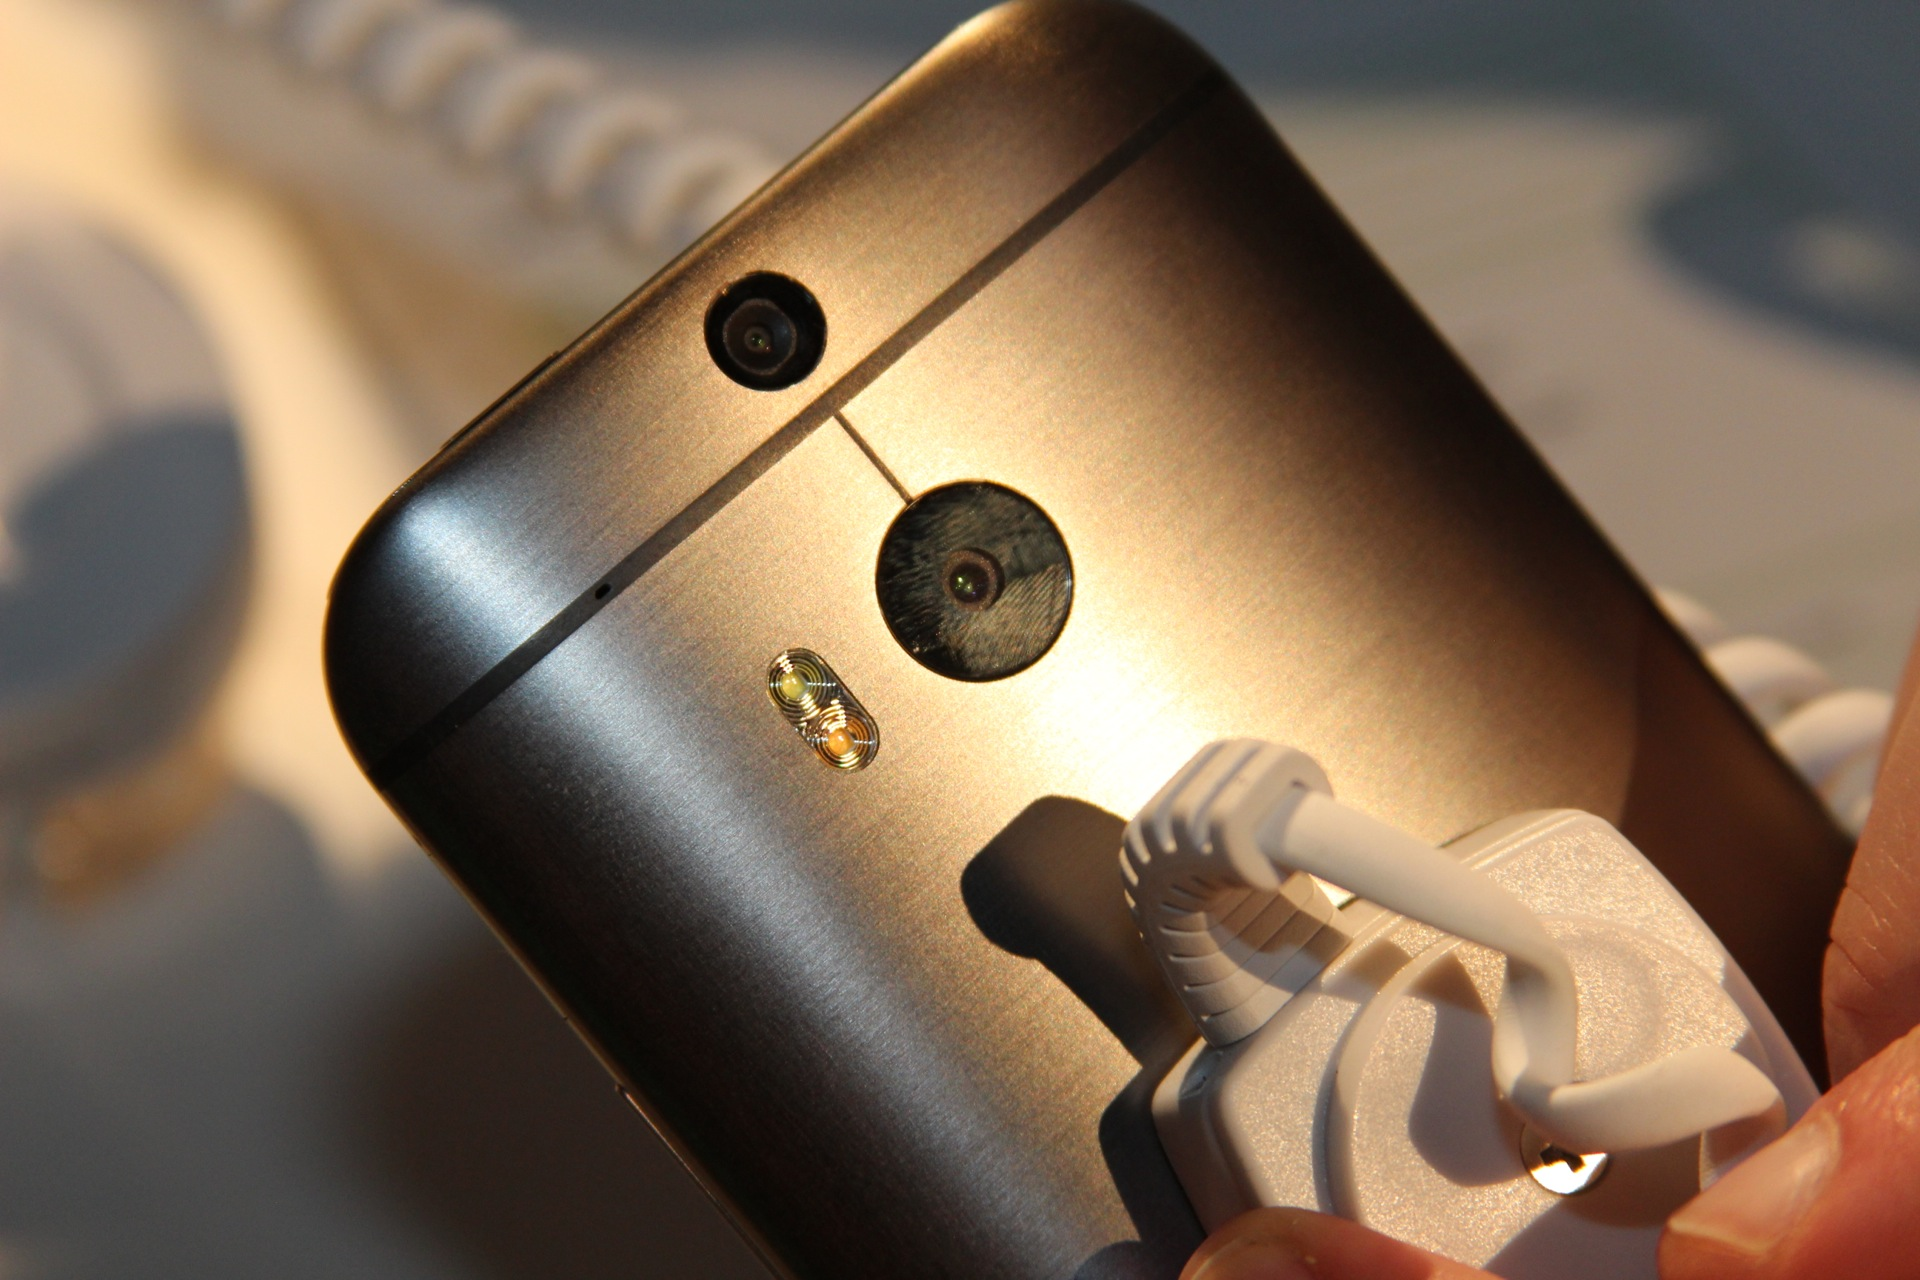 The new dual-LED flash and dual rear-facing cameras.